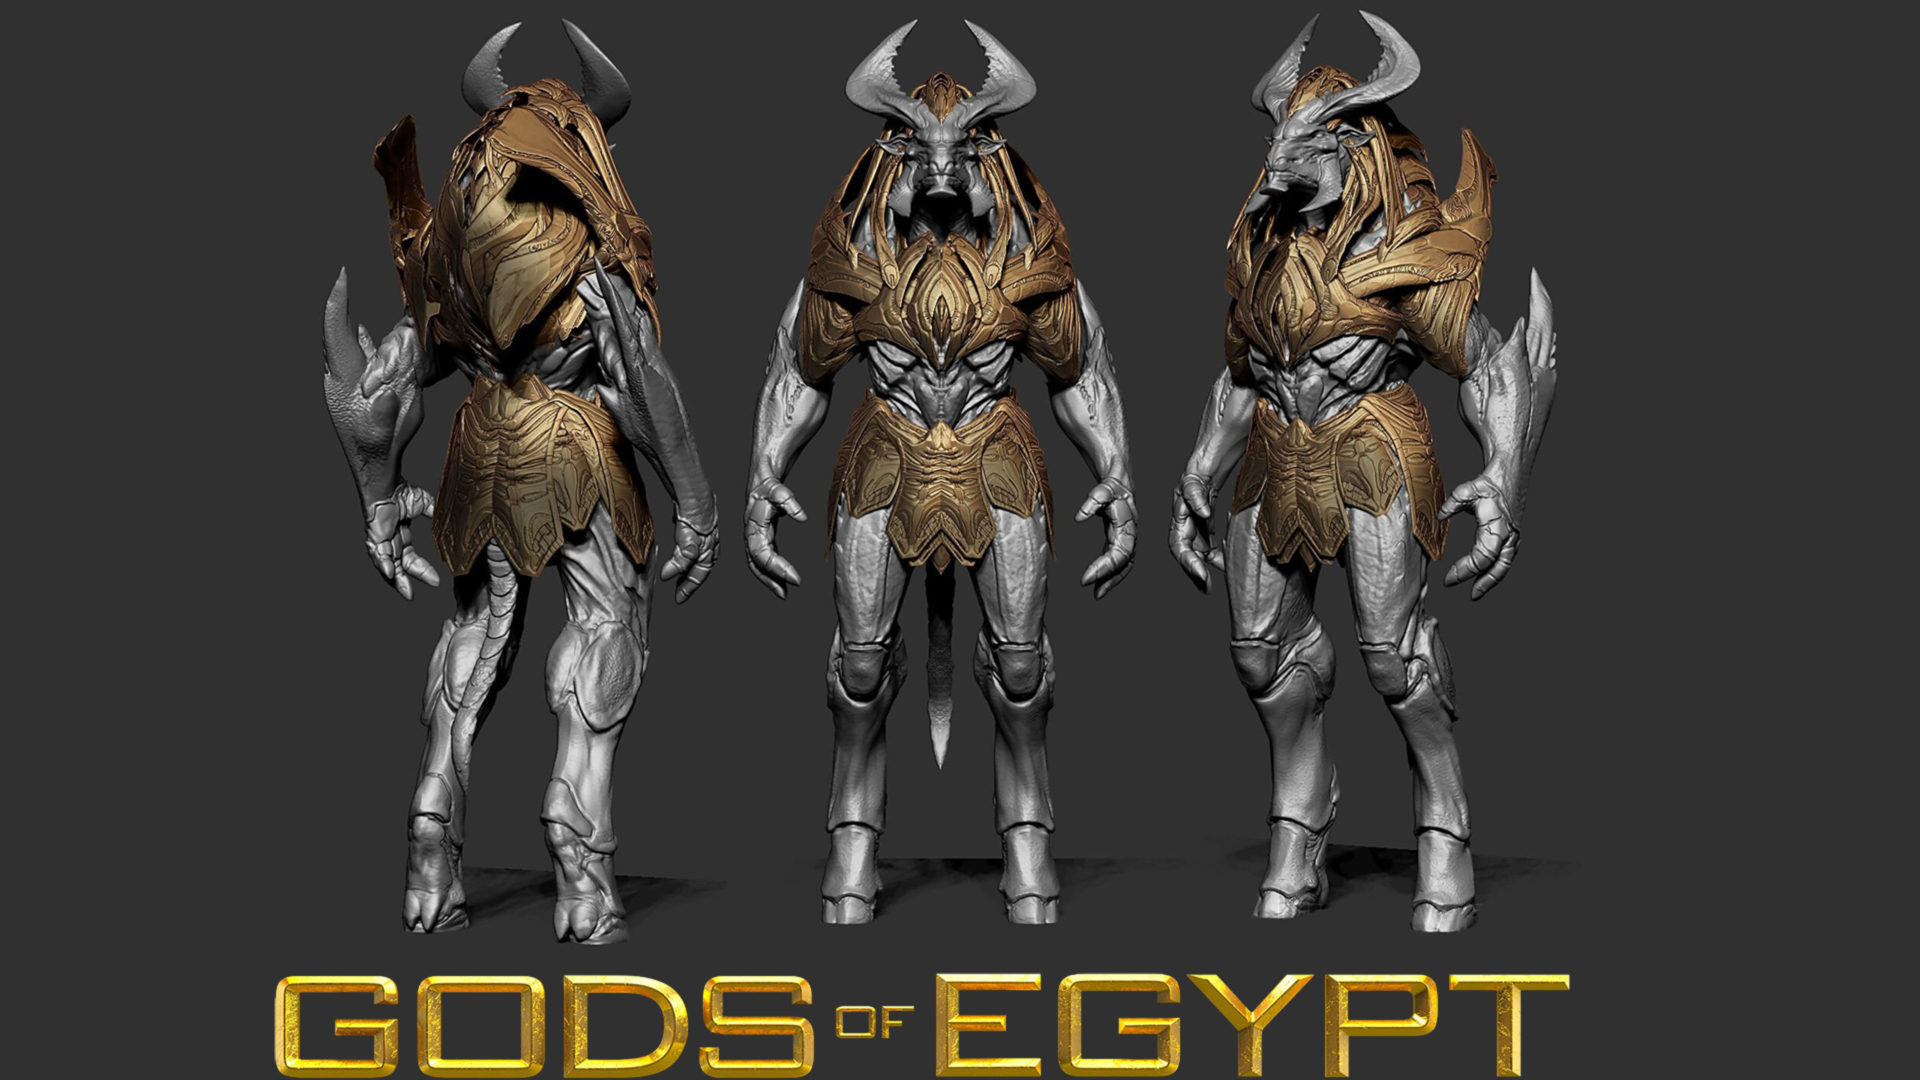 Cars The Movie Christmas Wallpaper Gods Of Egypt War Of Gods Video Game Weapons Desktop